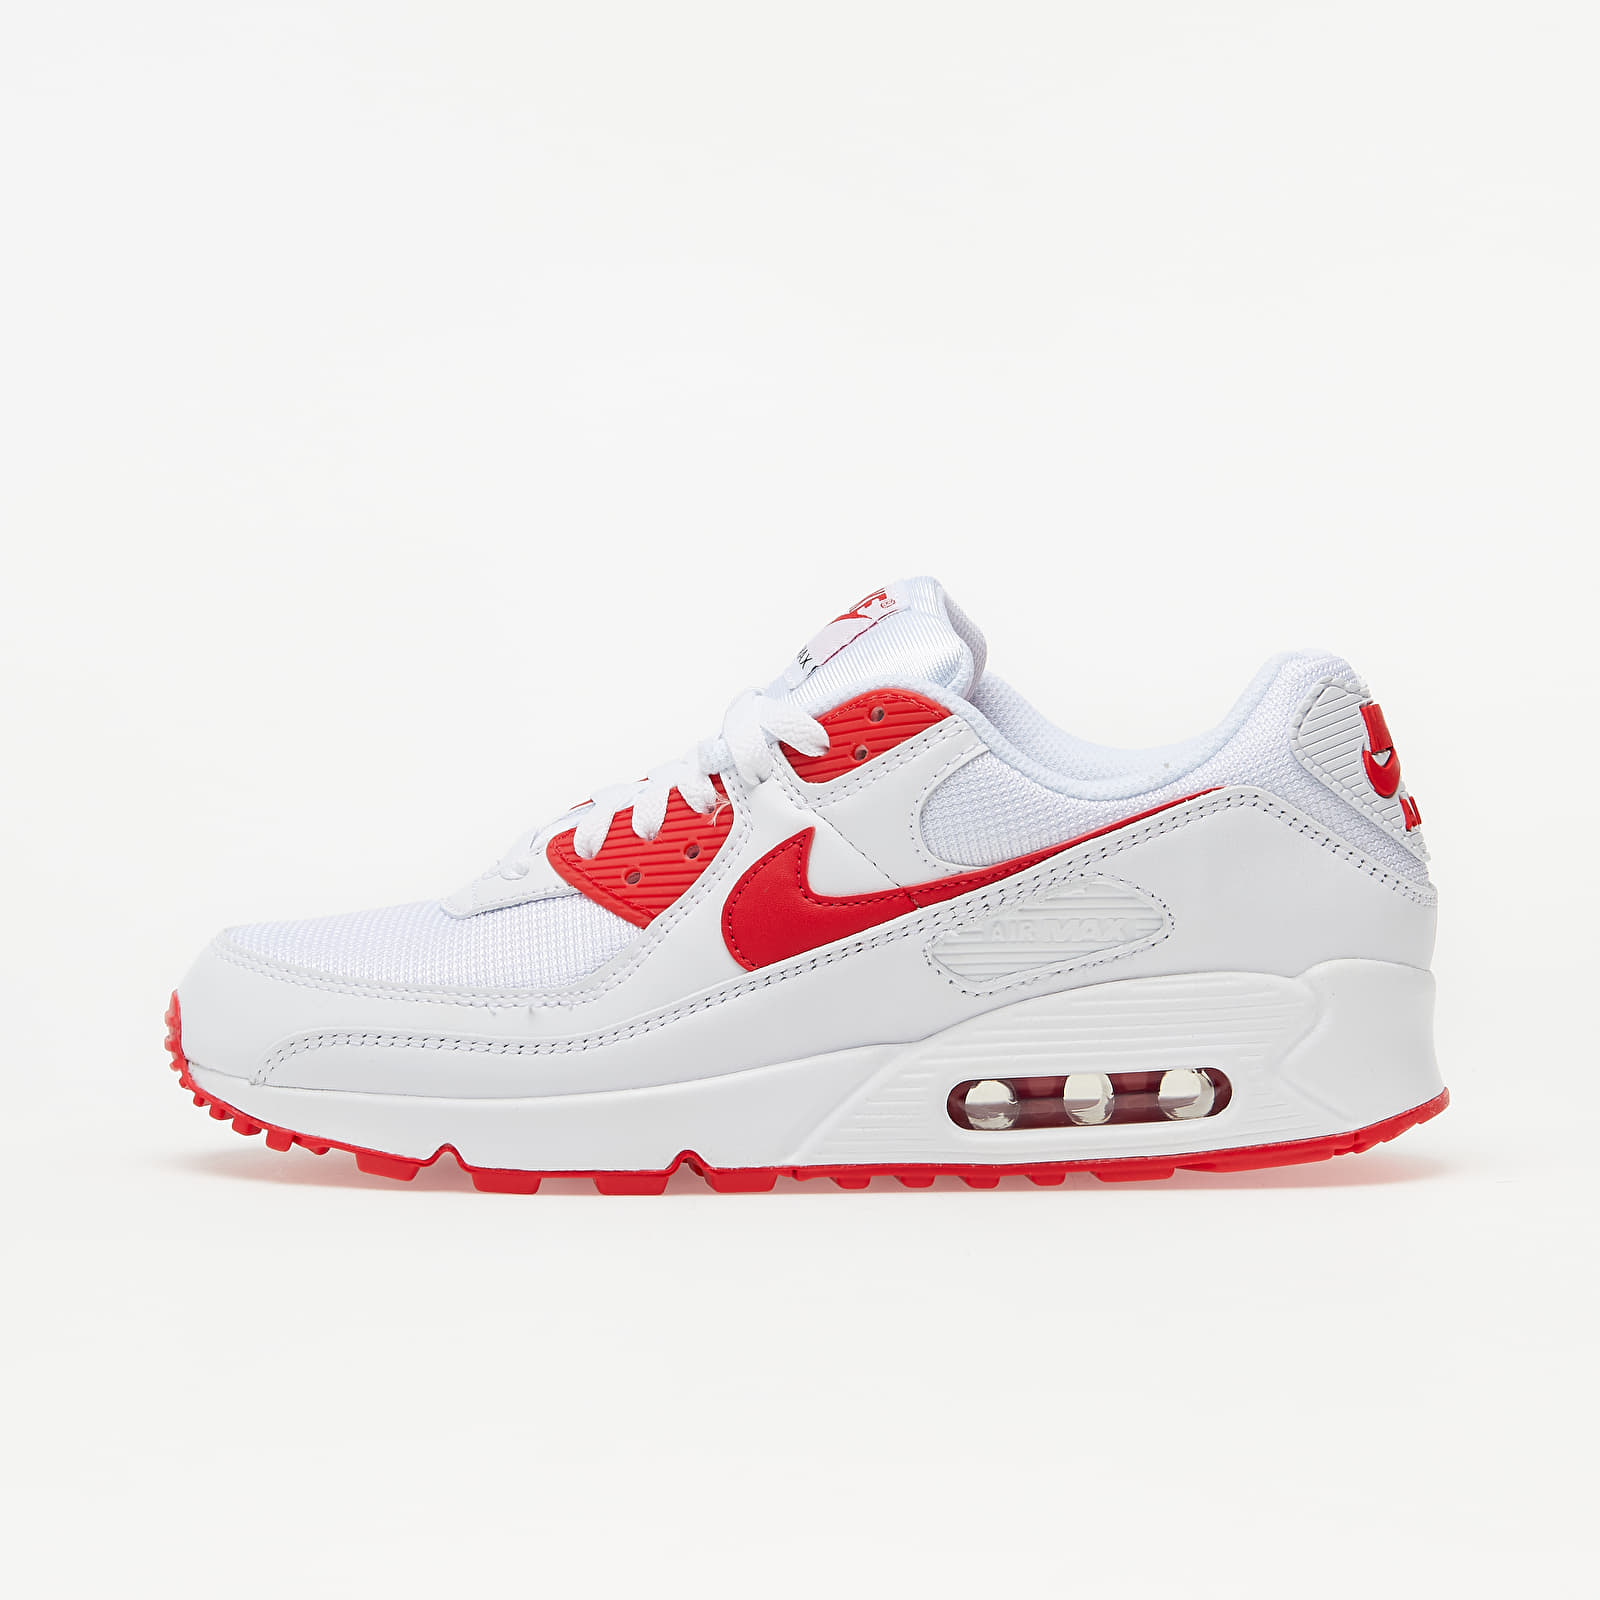 Nike Air Max 90 White/ Hyper Red-Black EUR 42